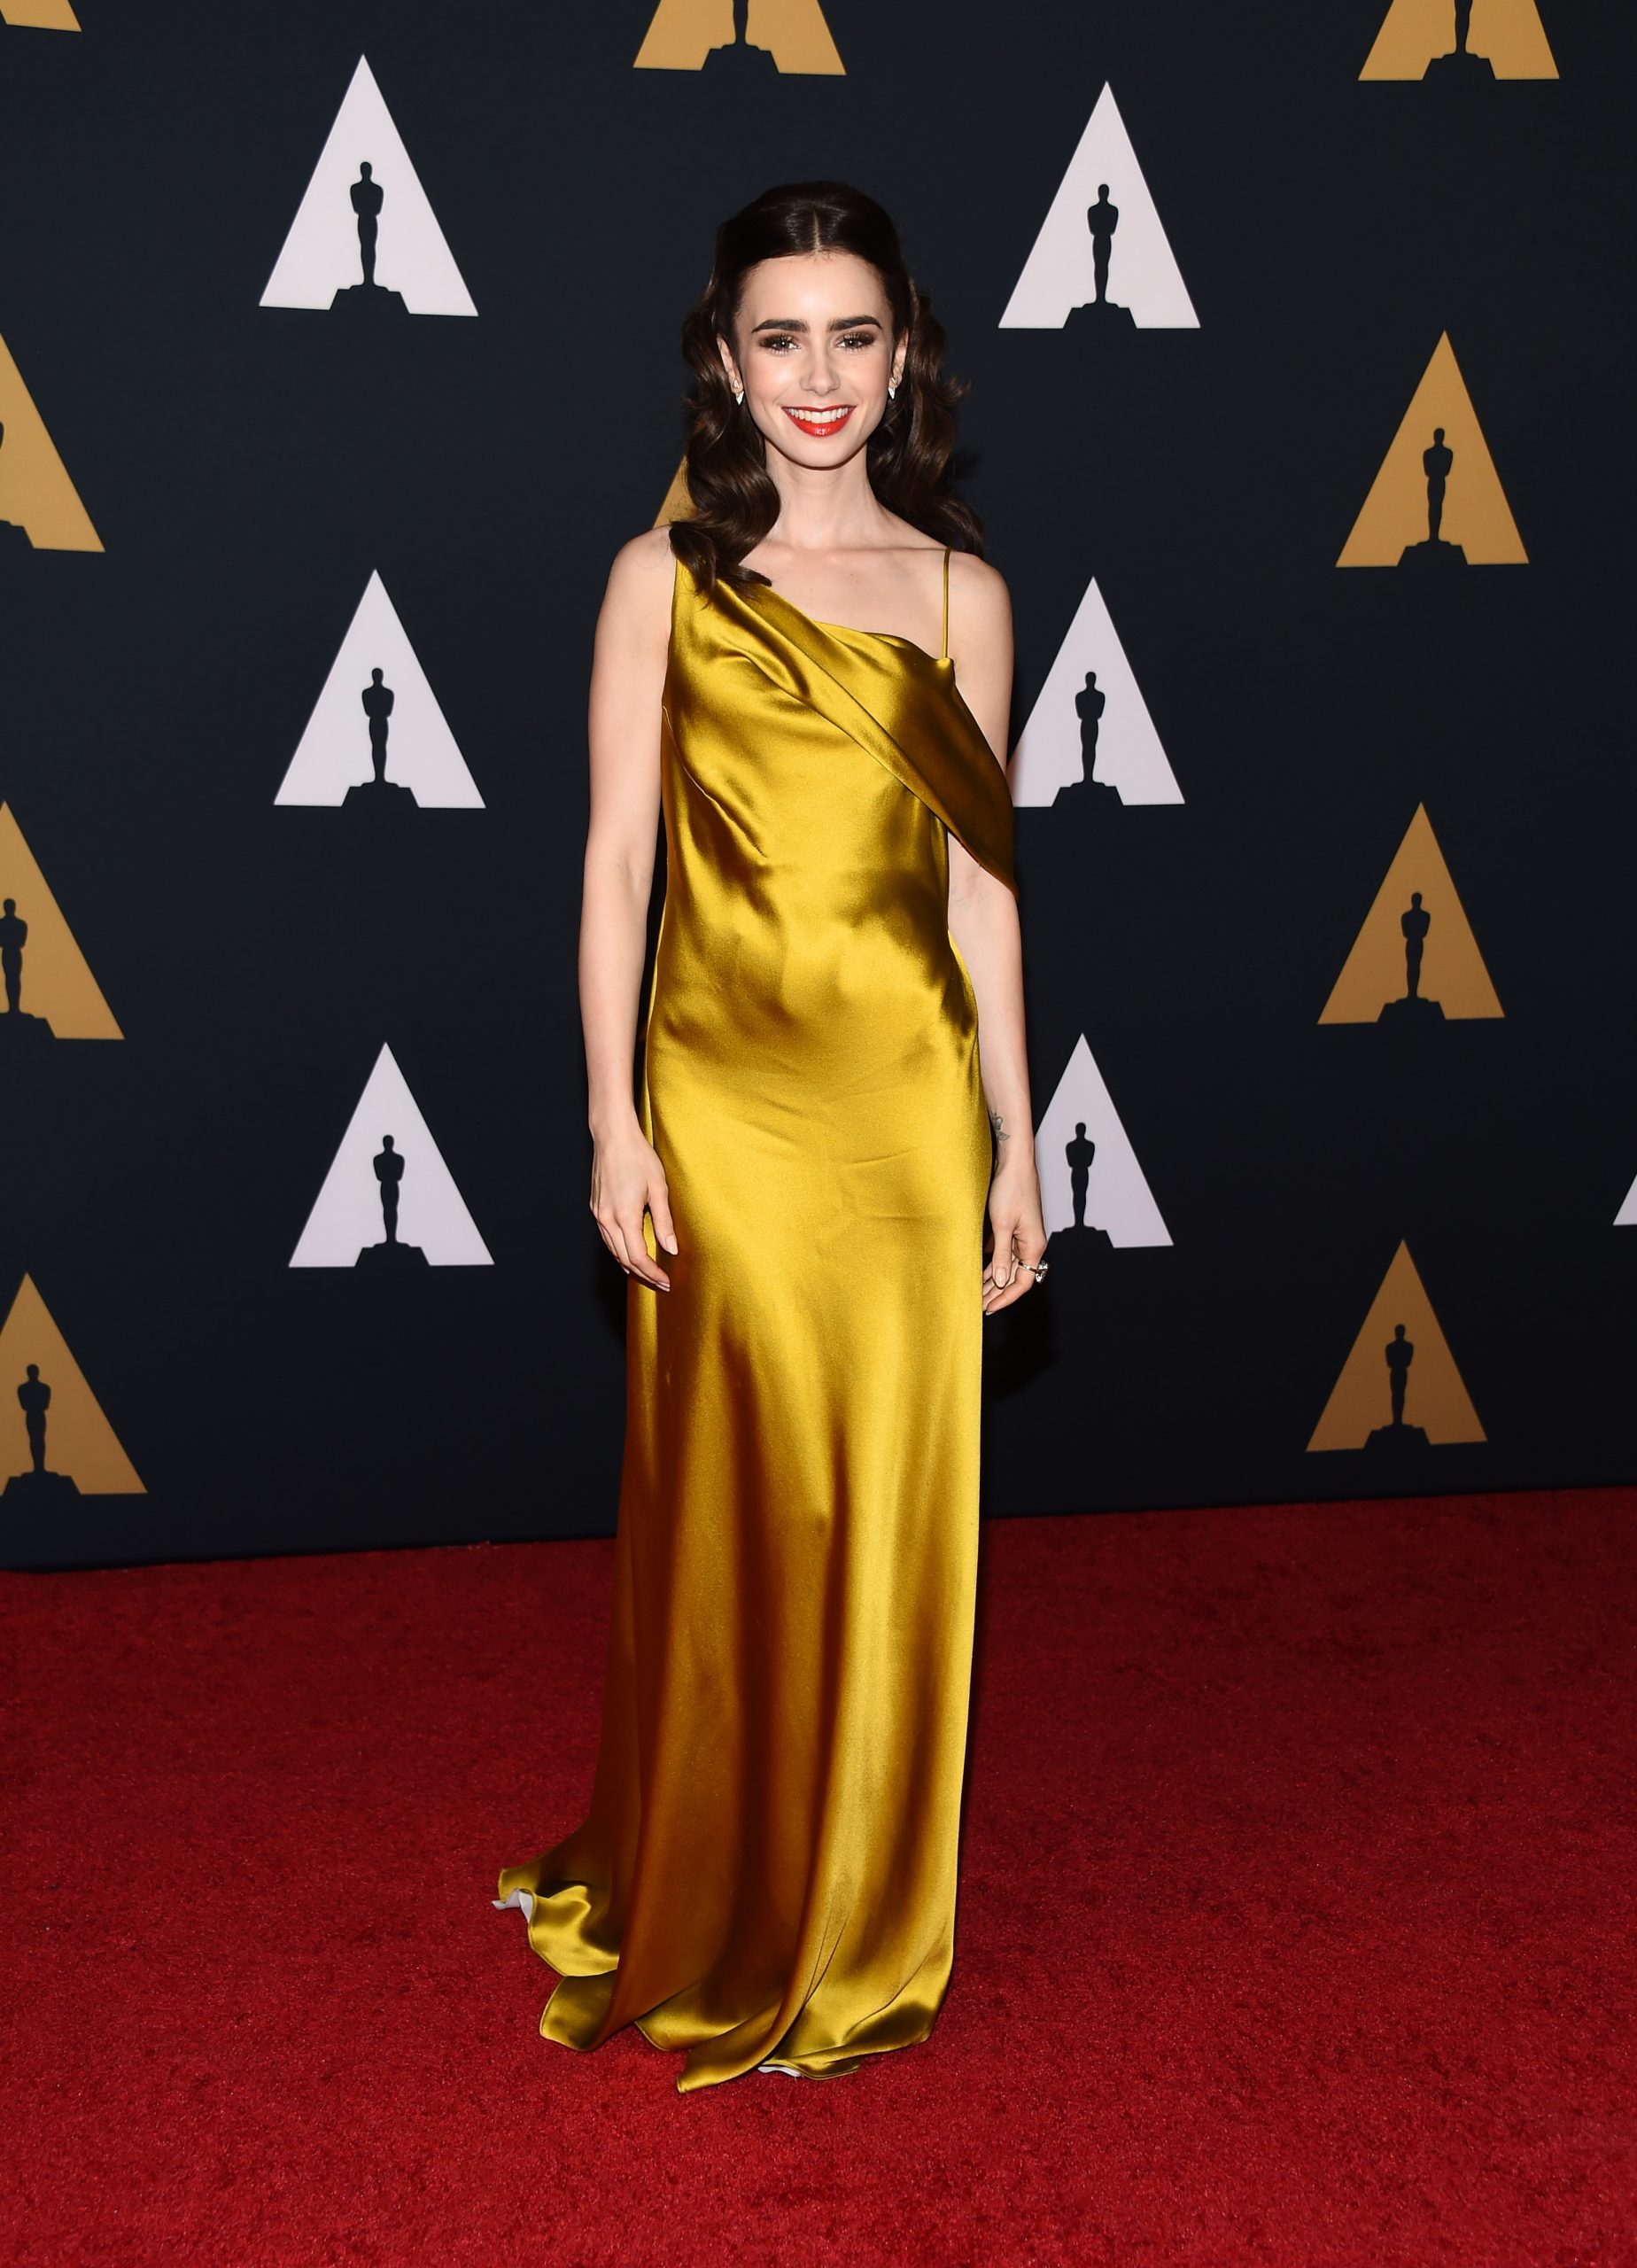 Satin Dress Inspirations For New Year's Night!